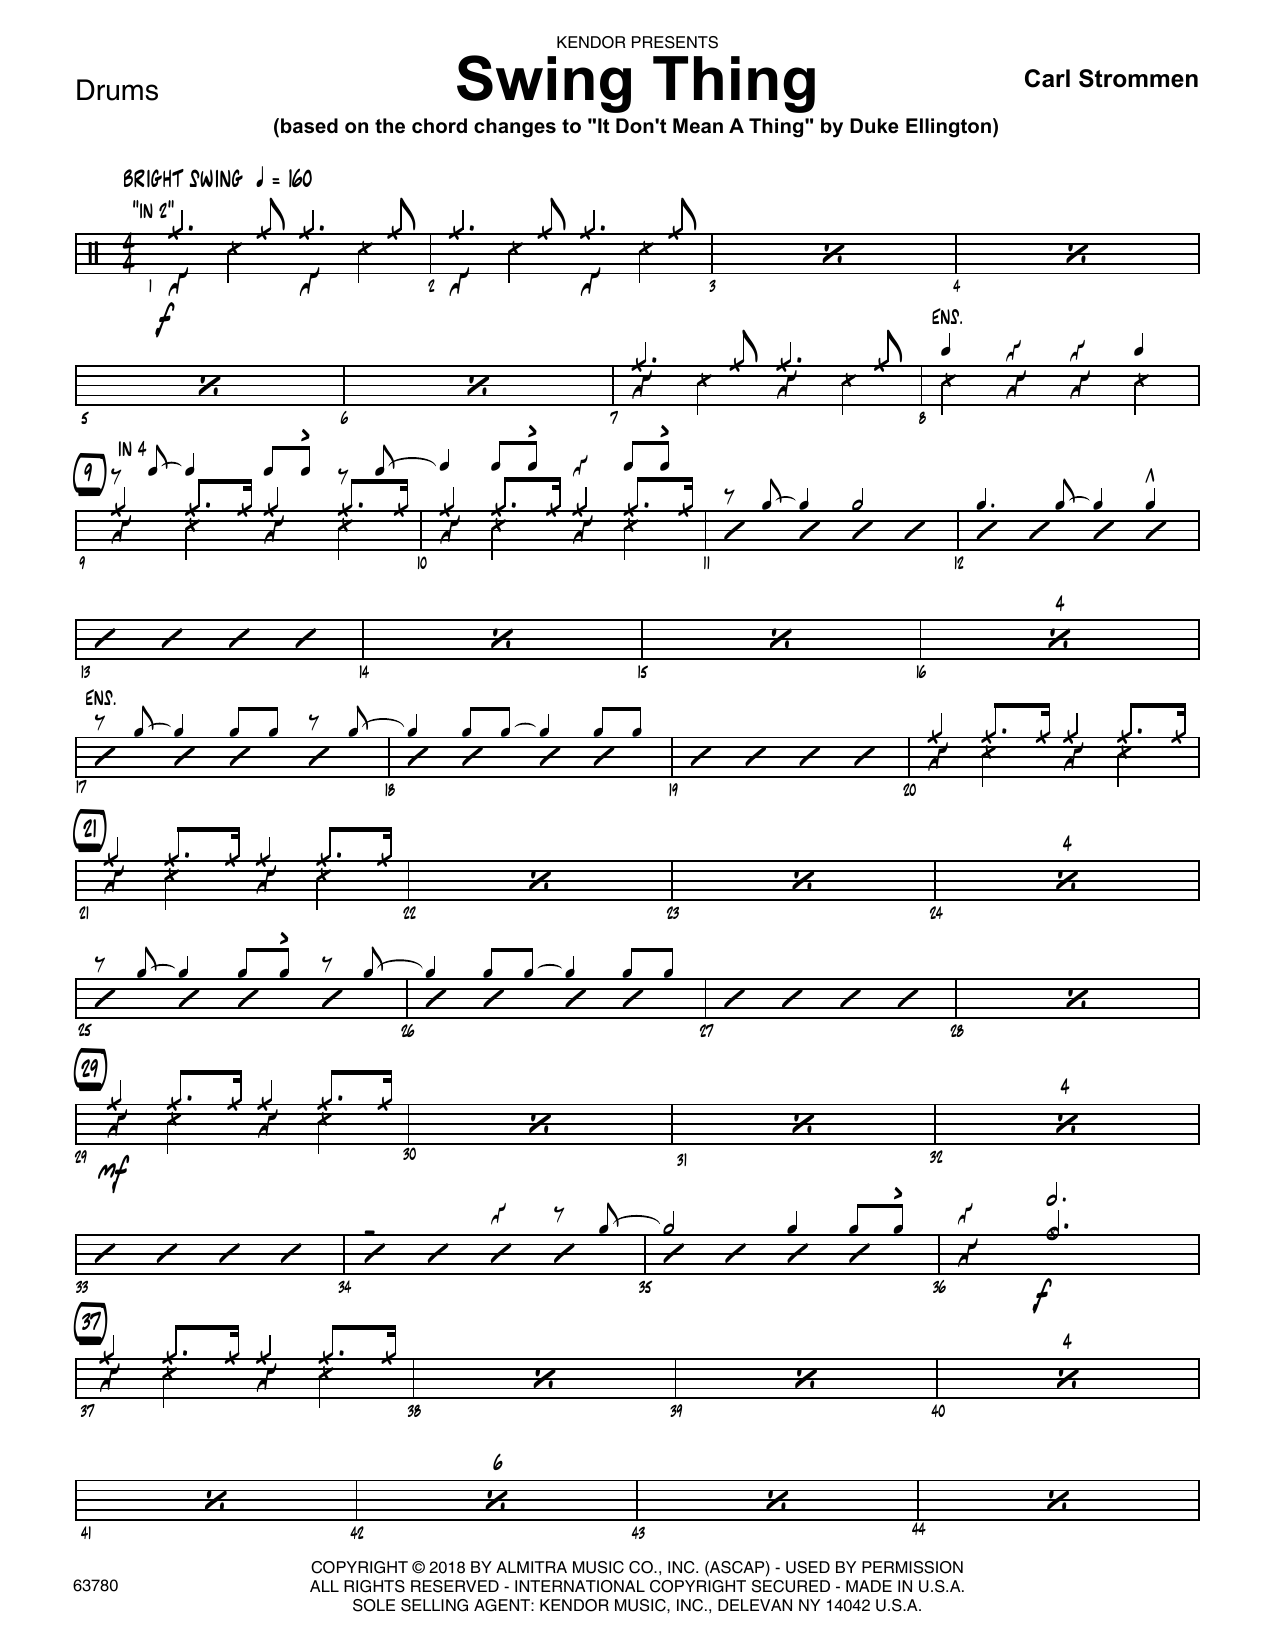 Carl Strommen Swing Thing - Drum Set sheet music preview music notes and score for Jazz Ensemble including 2 page(s)